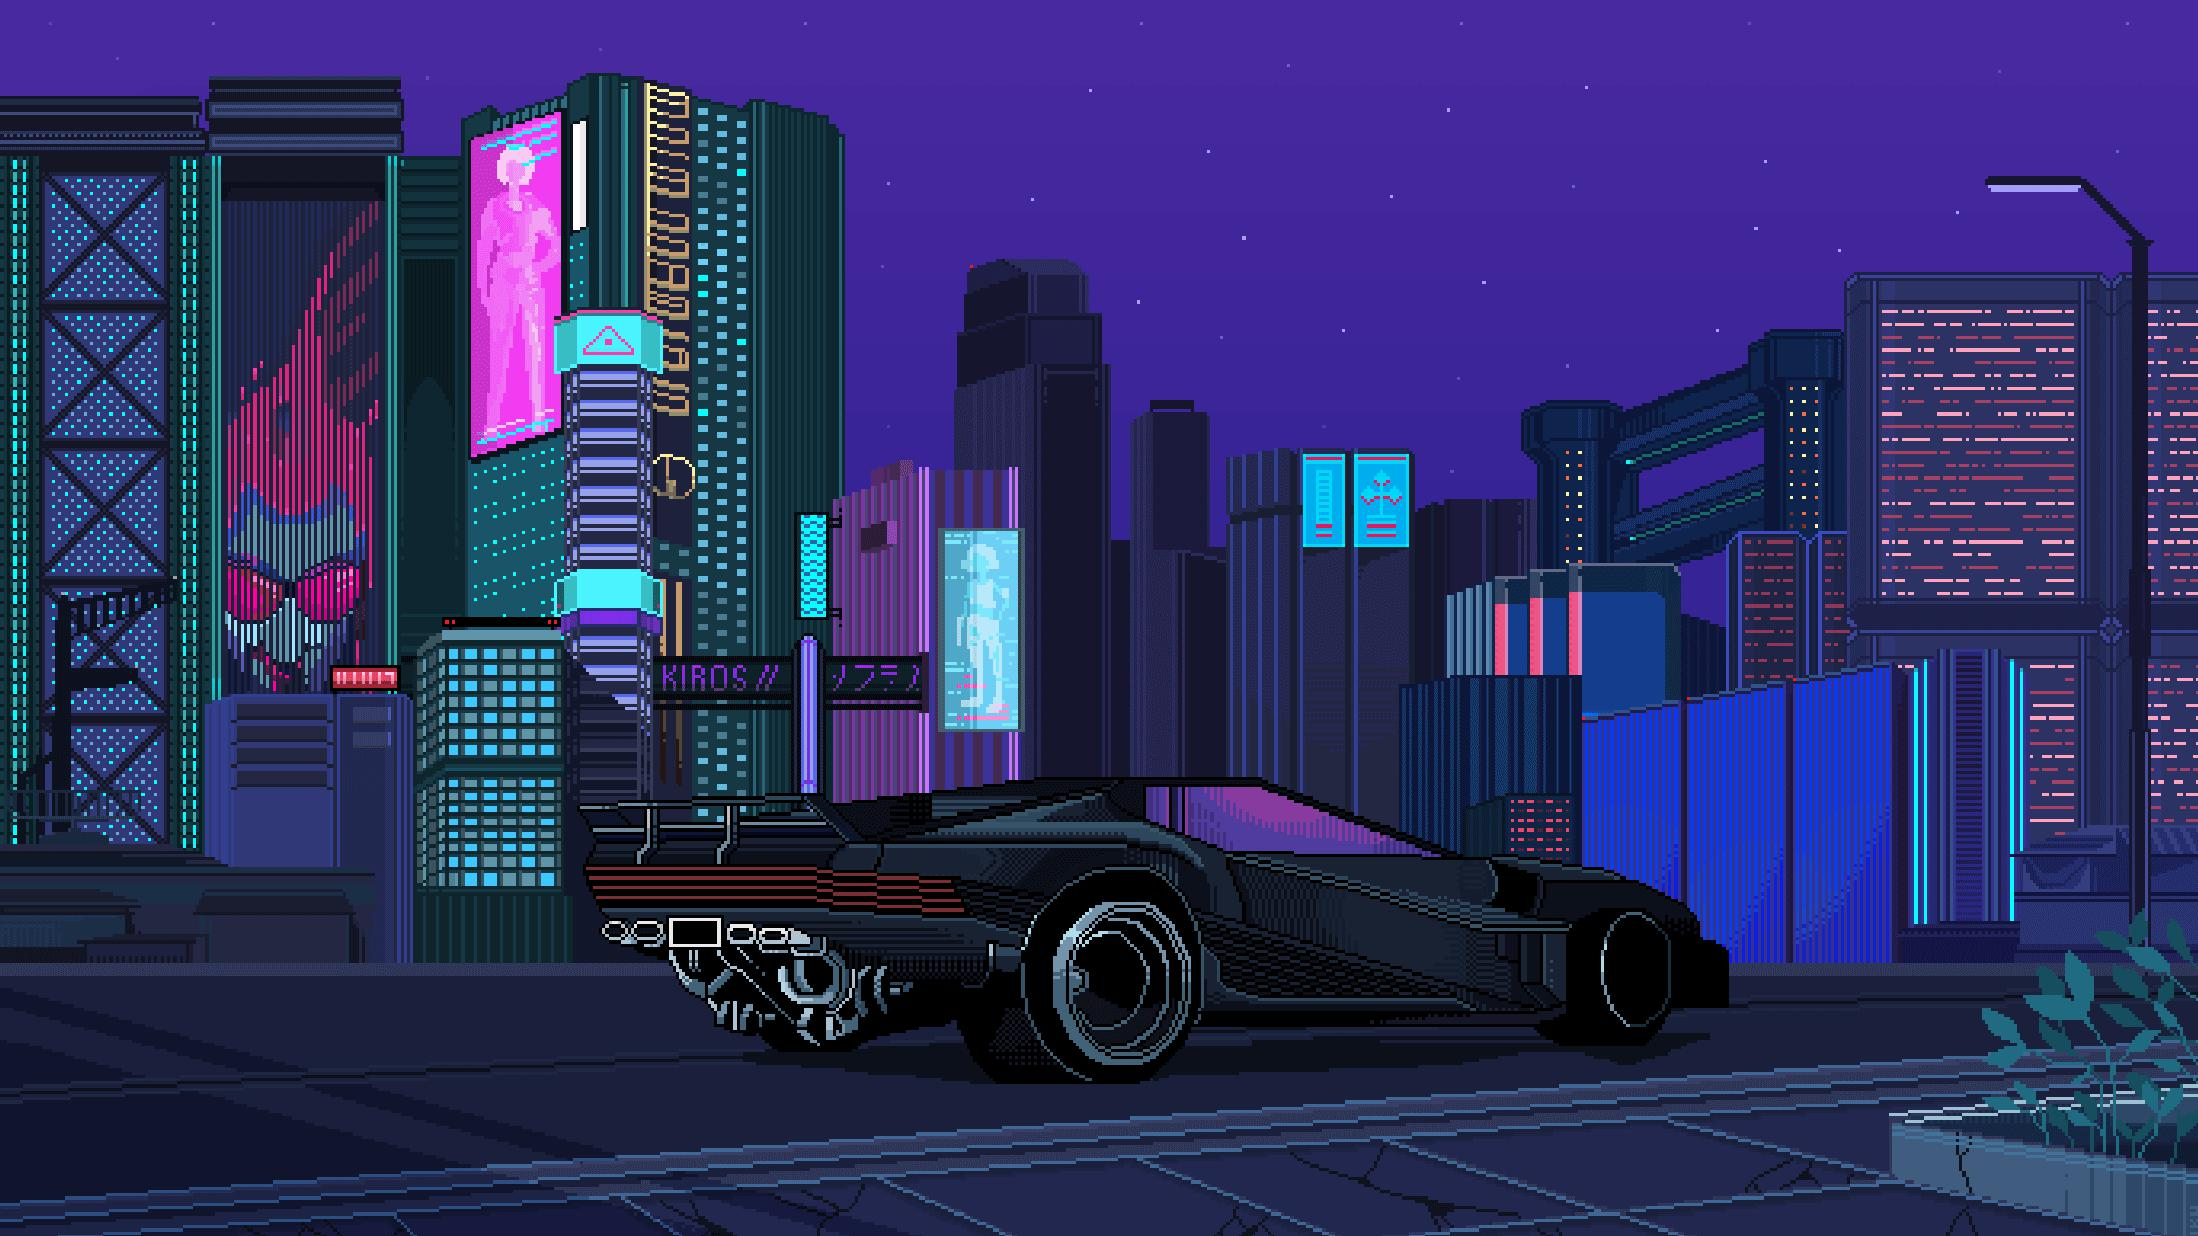 Cyberpunk desktop Wallpaper Download High Resolution K